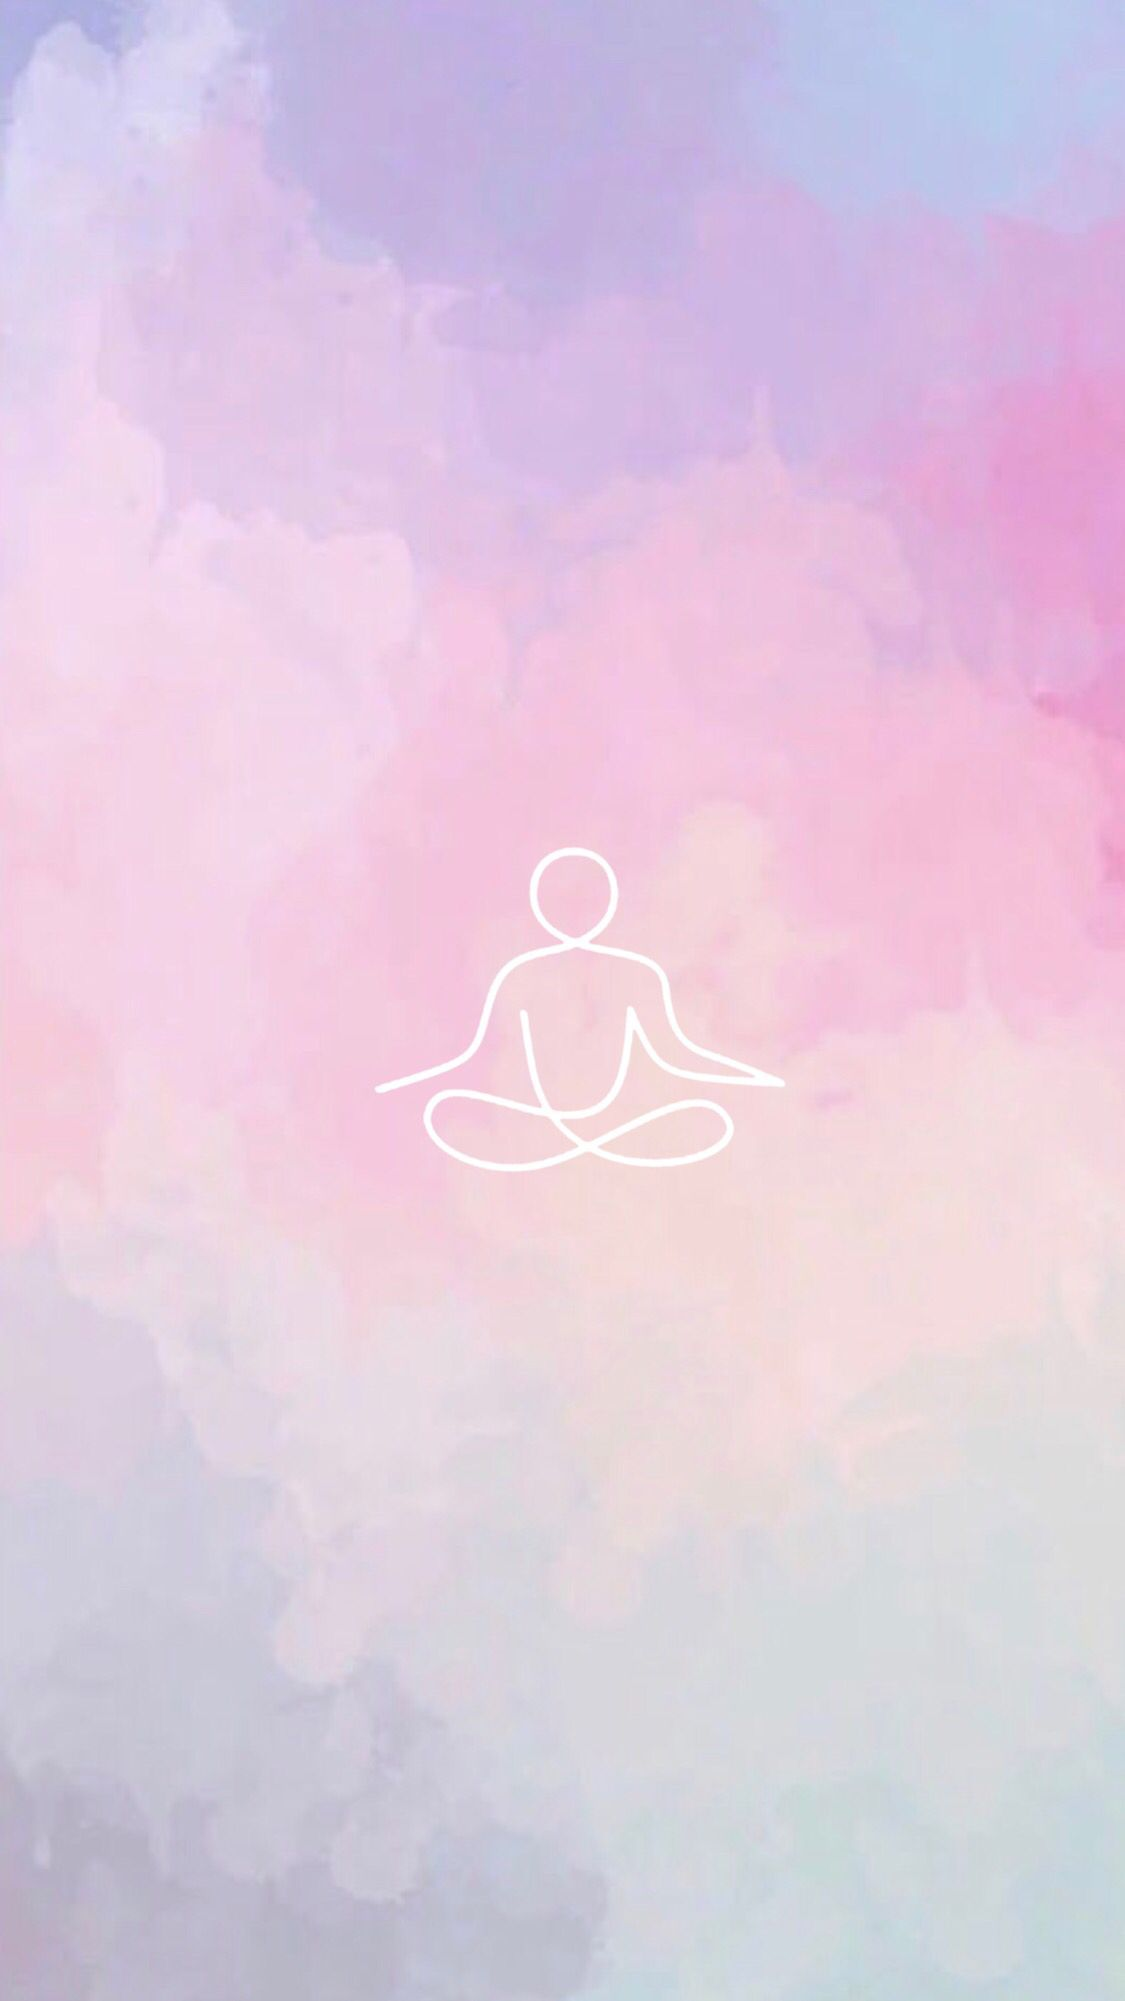 Yoga Cover Instagram In 2020 Iphone Wallpaper Yoga Yoga Art Painting Yoga Background